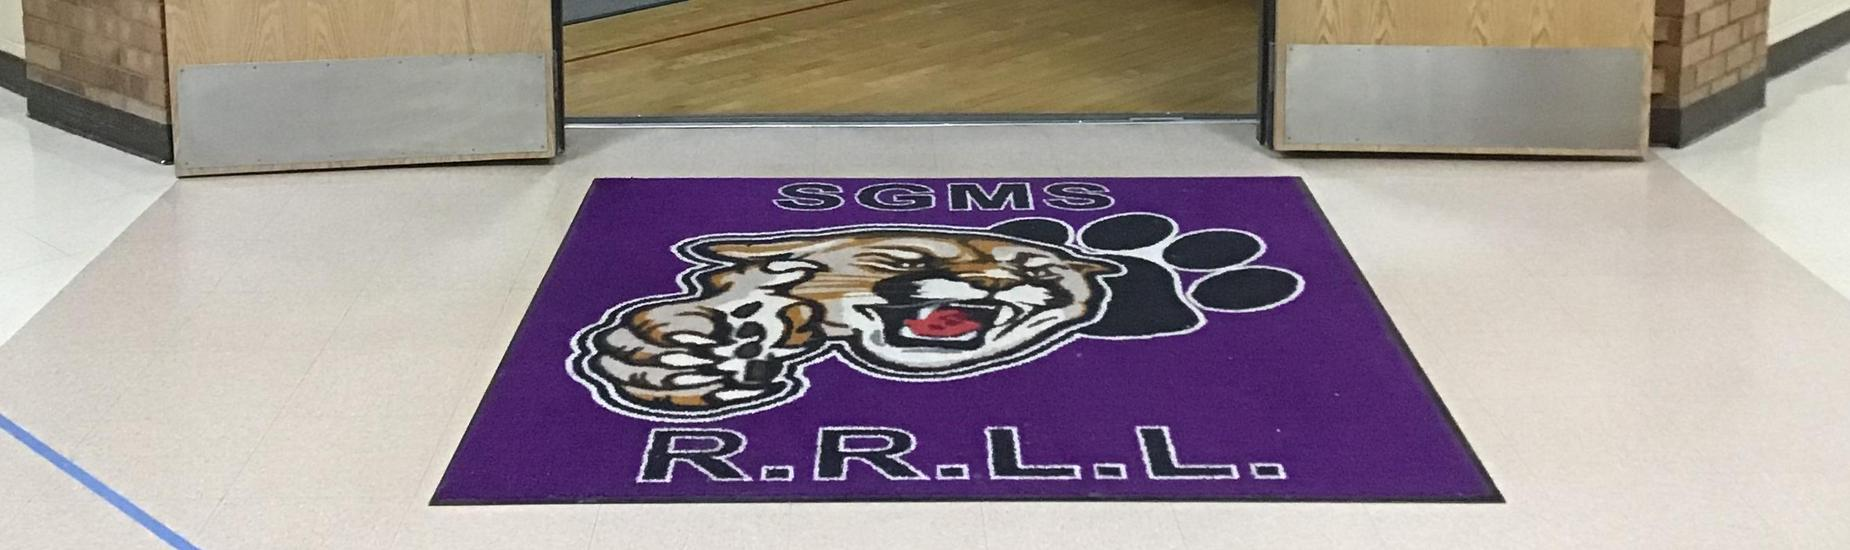 SGMS Cougar on a floor mat